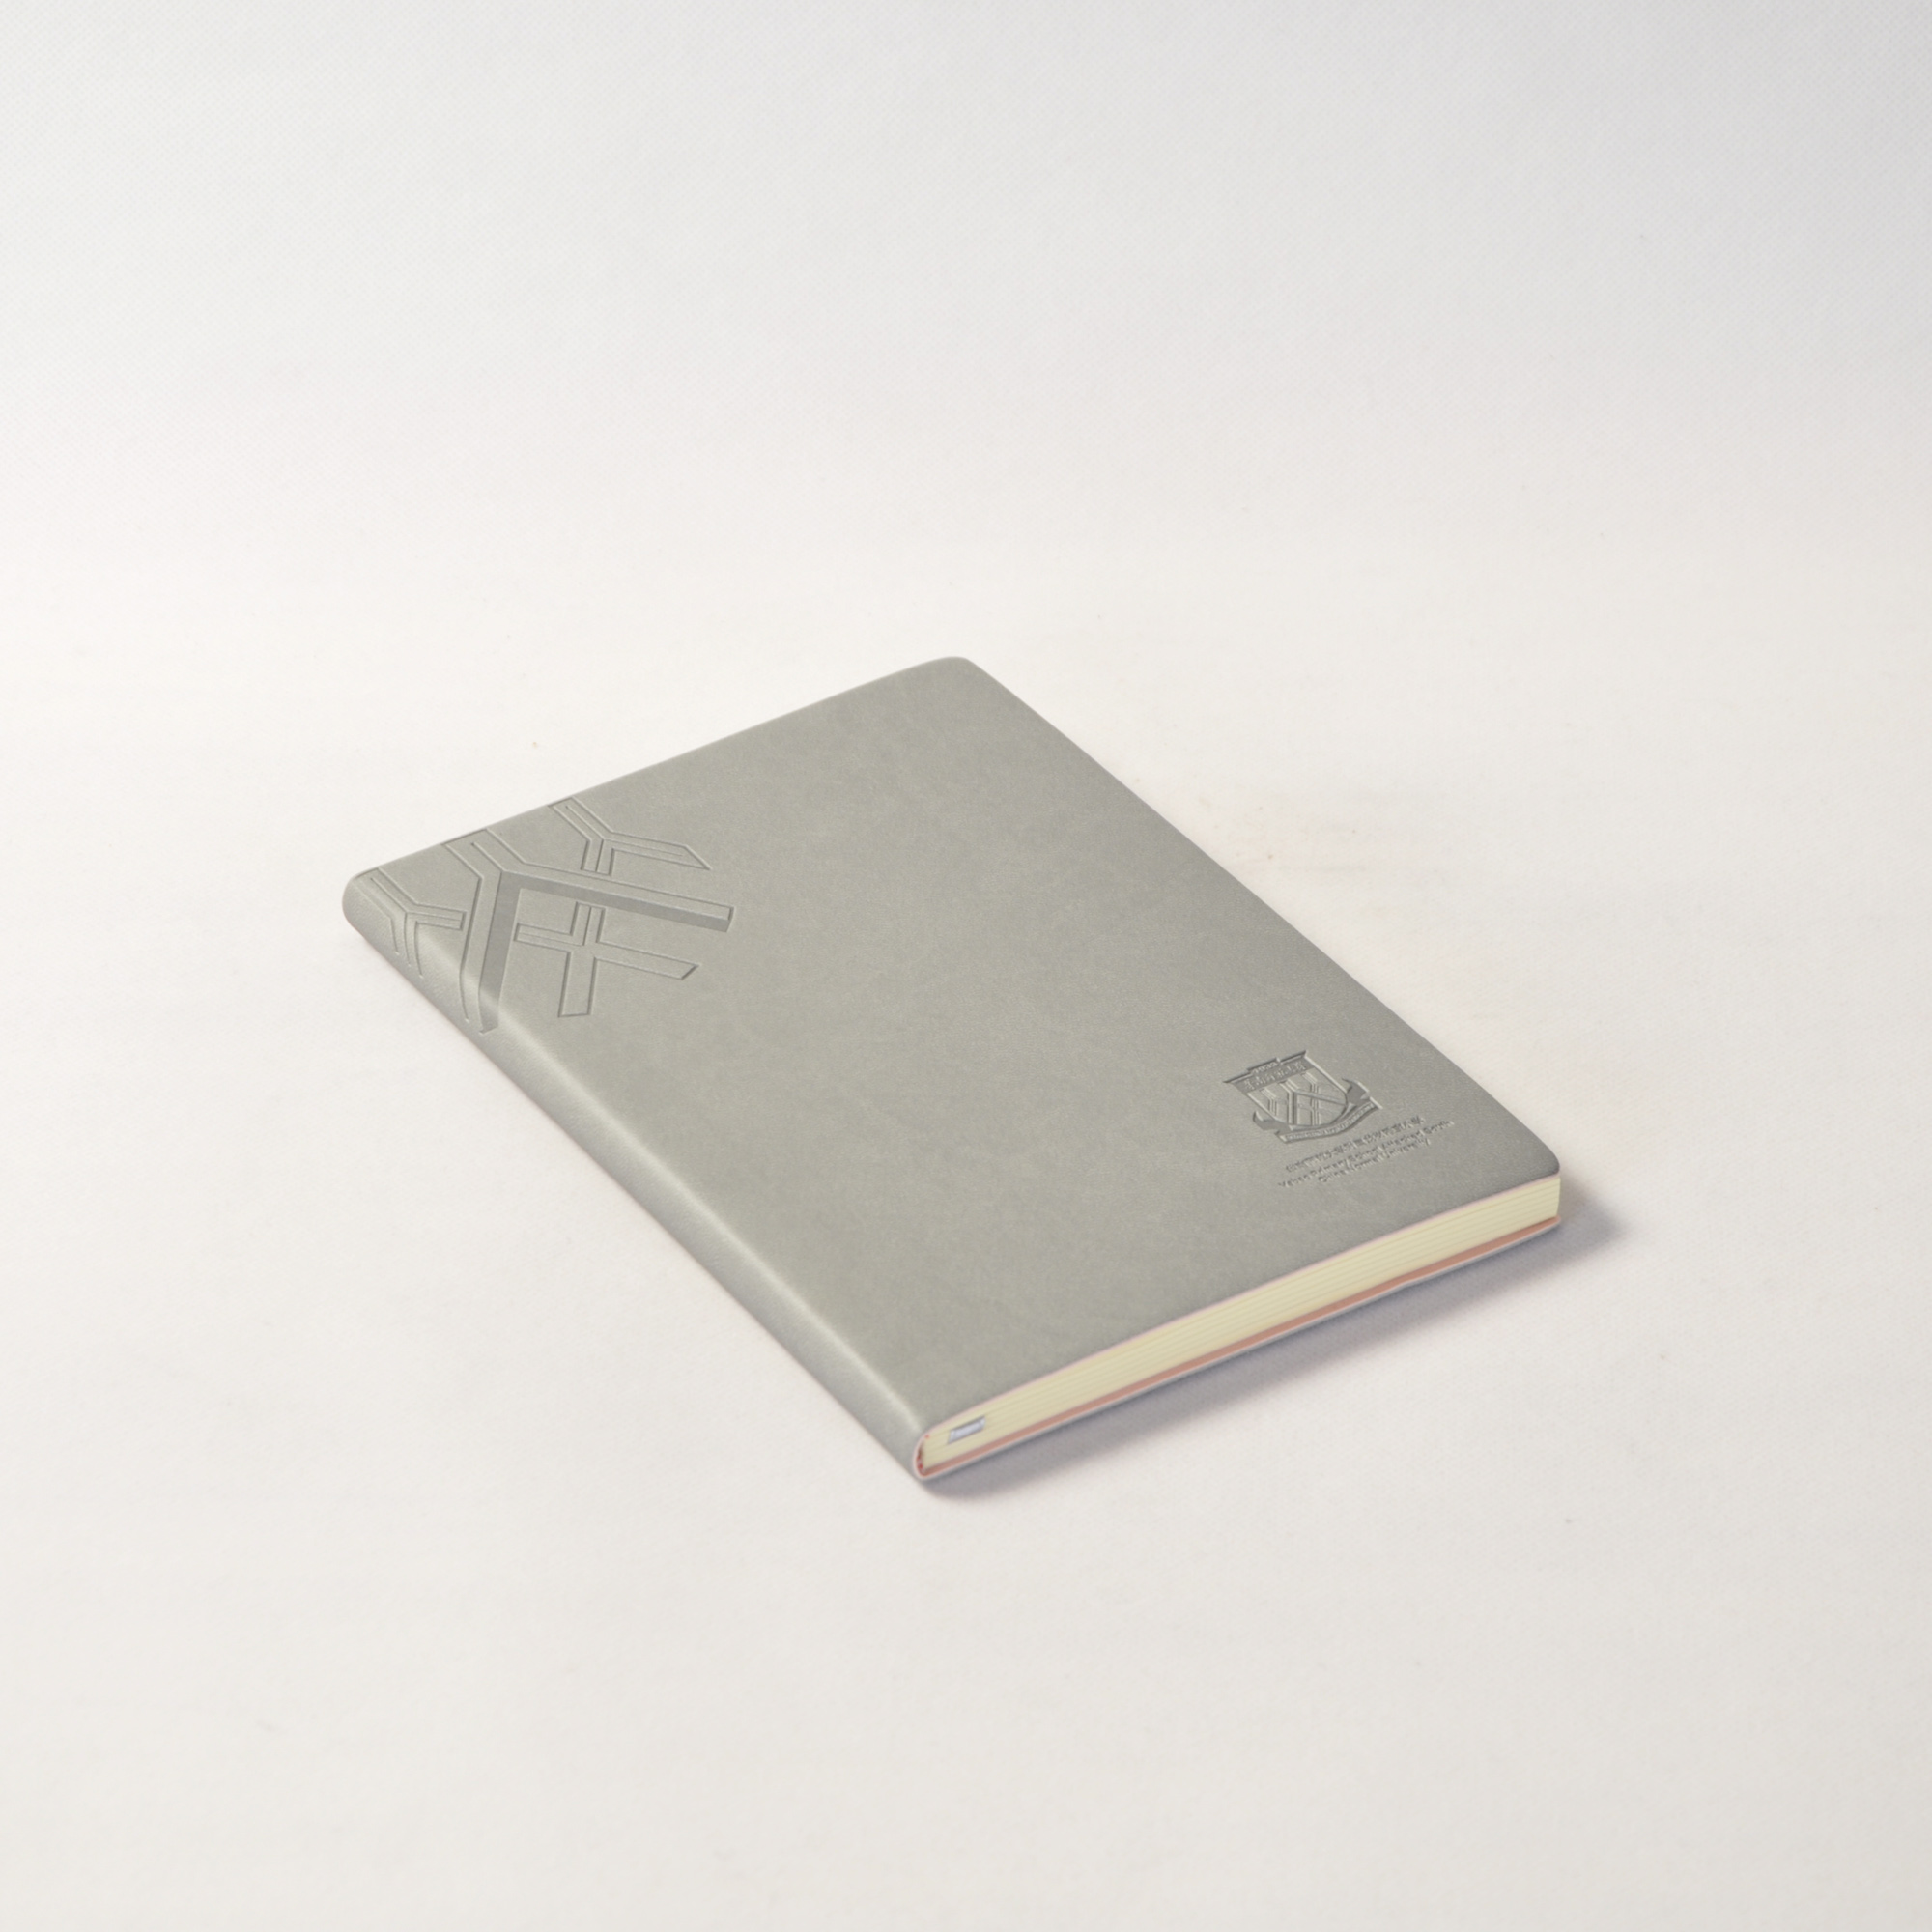 25K custom printed leather notebook and sketchbook